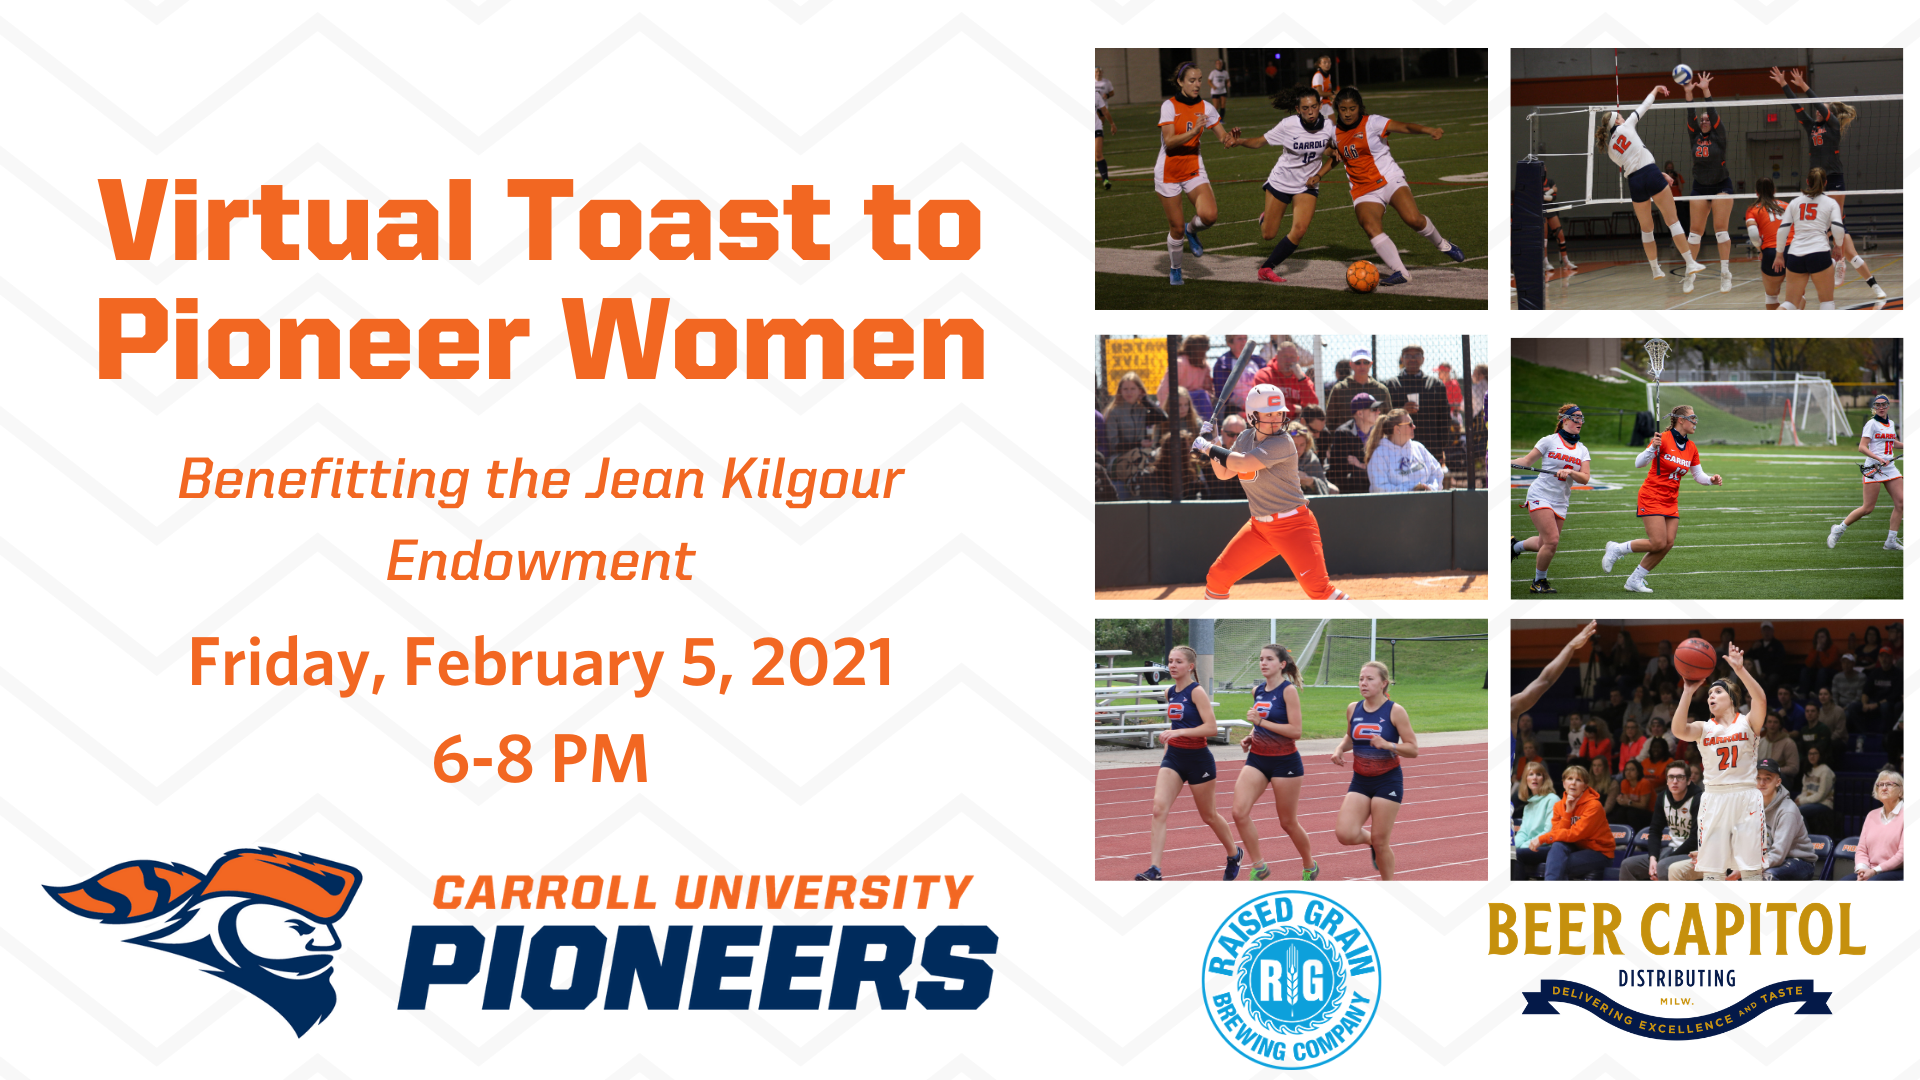 A Virtual Toast to Pioneer Women